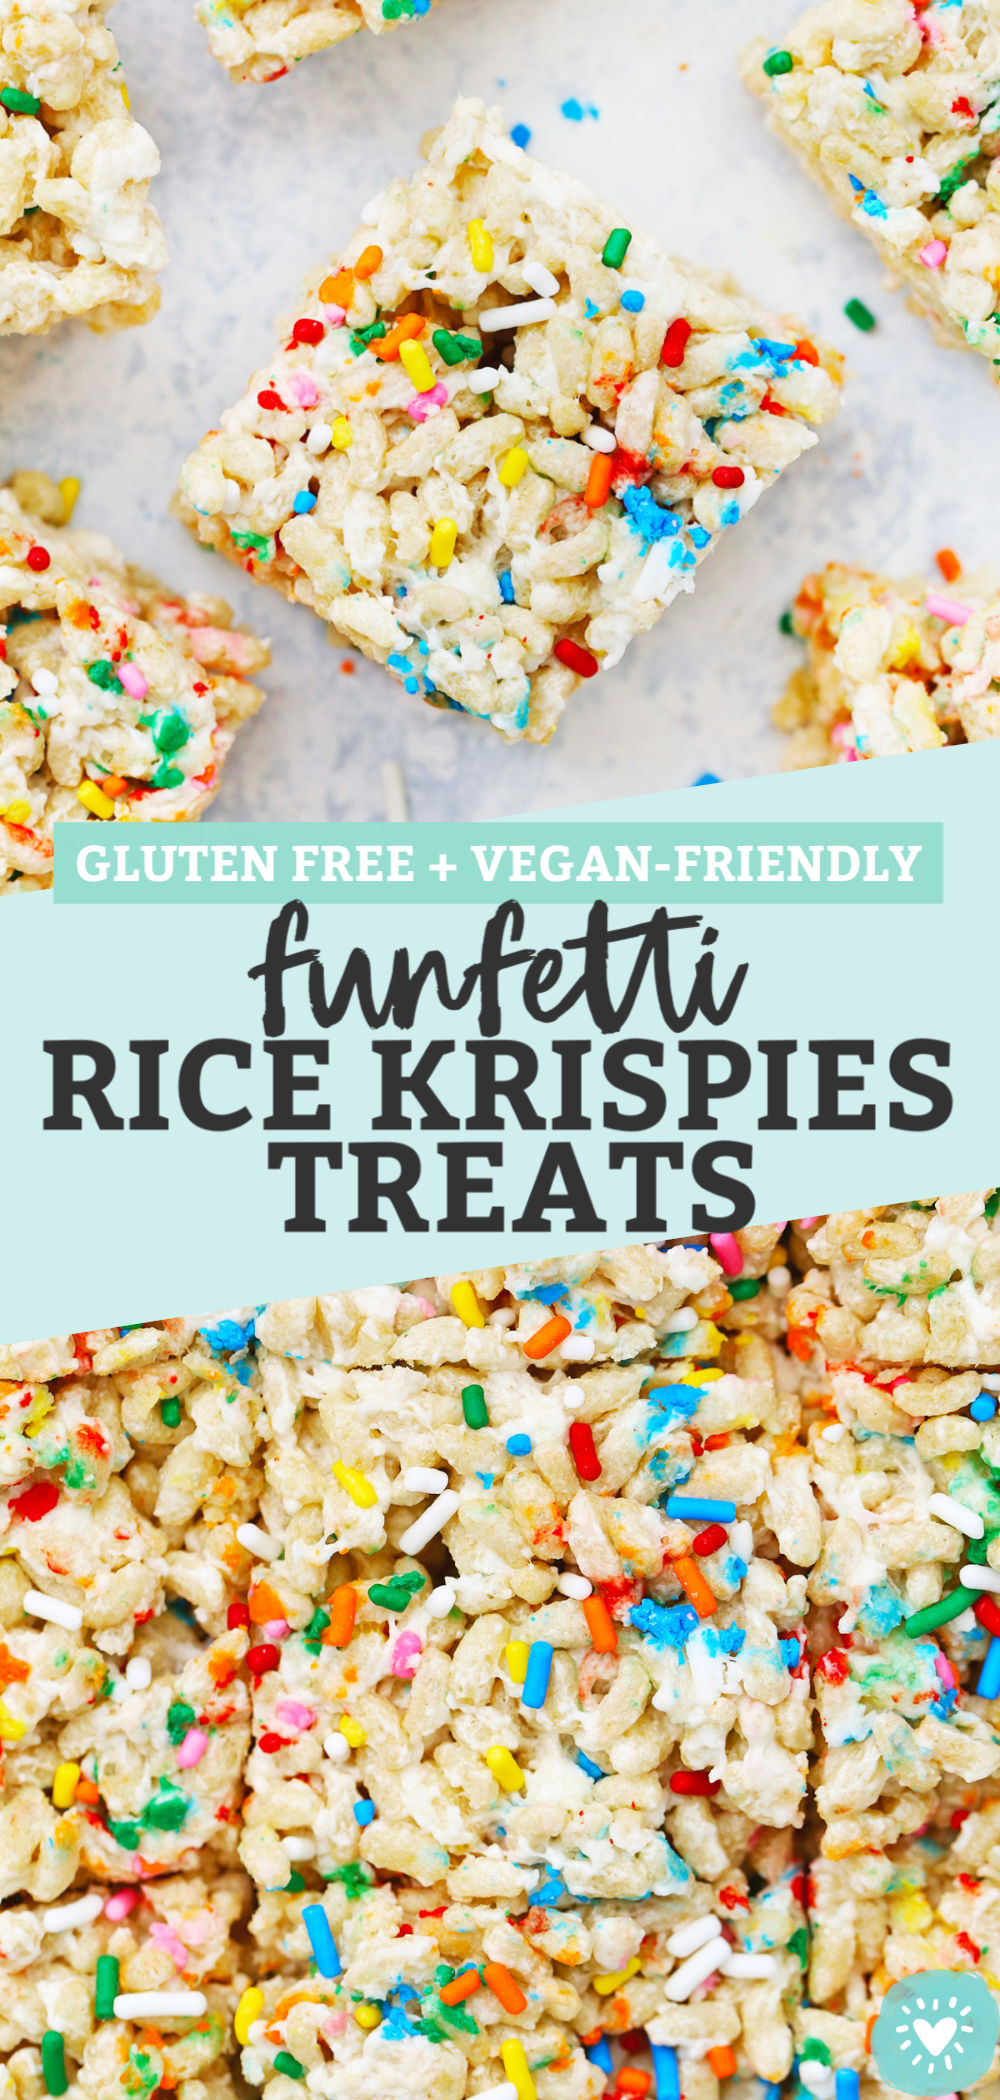 Funfetti Rice Krispies Treats from One Lovely Life